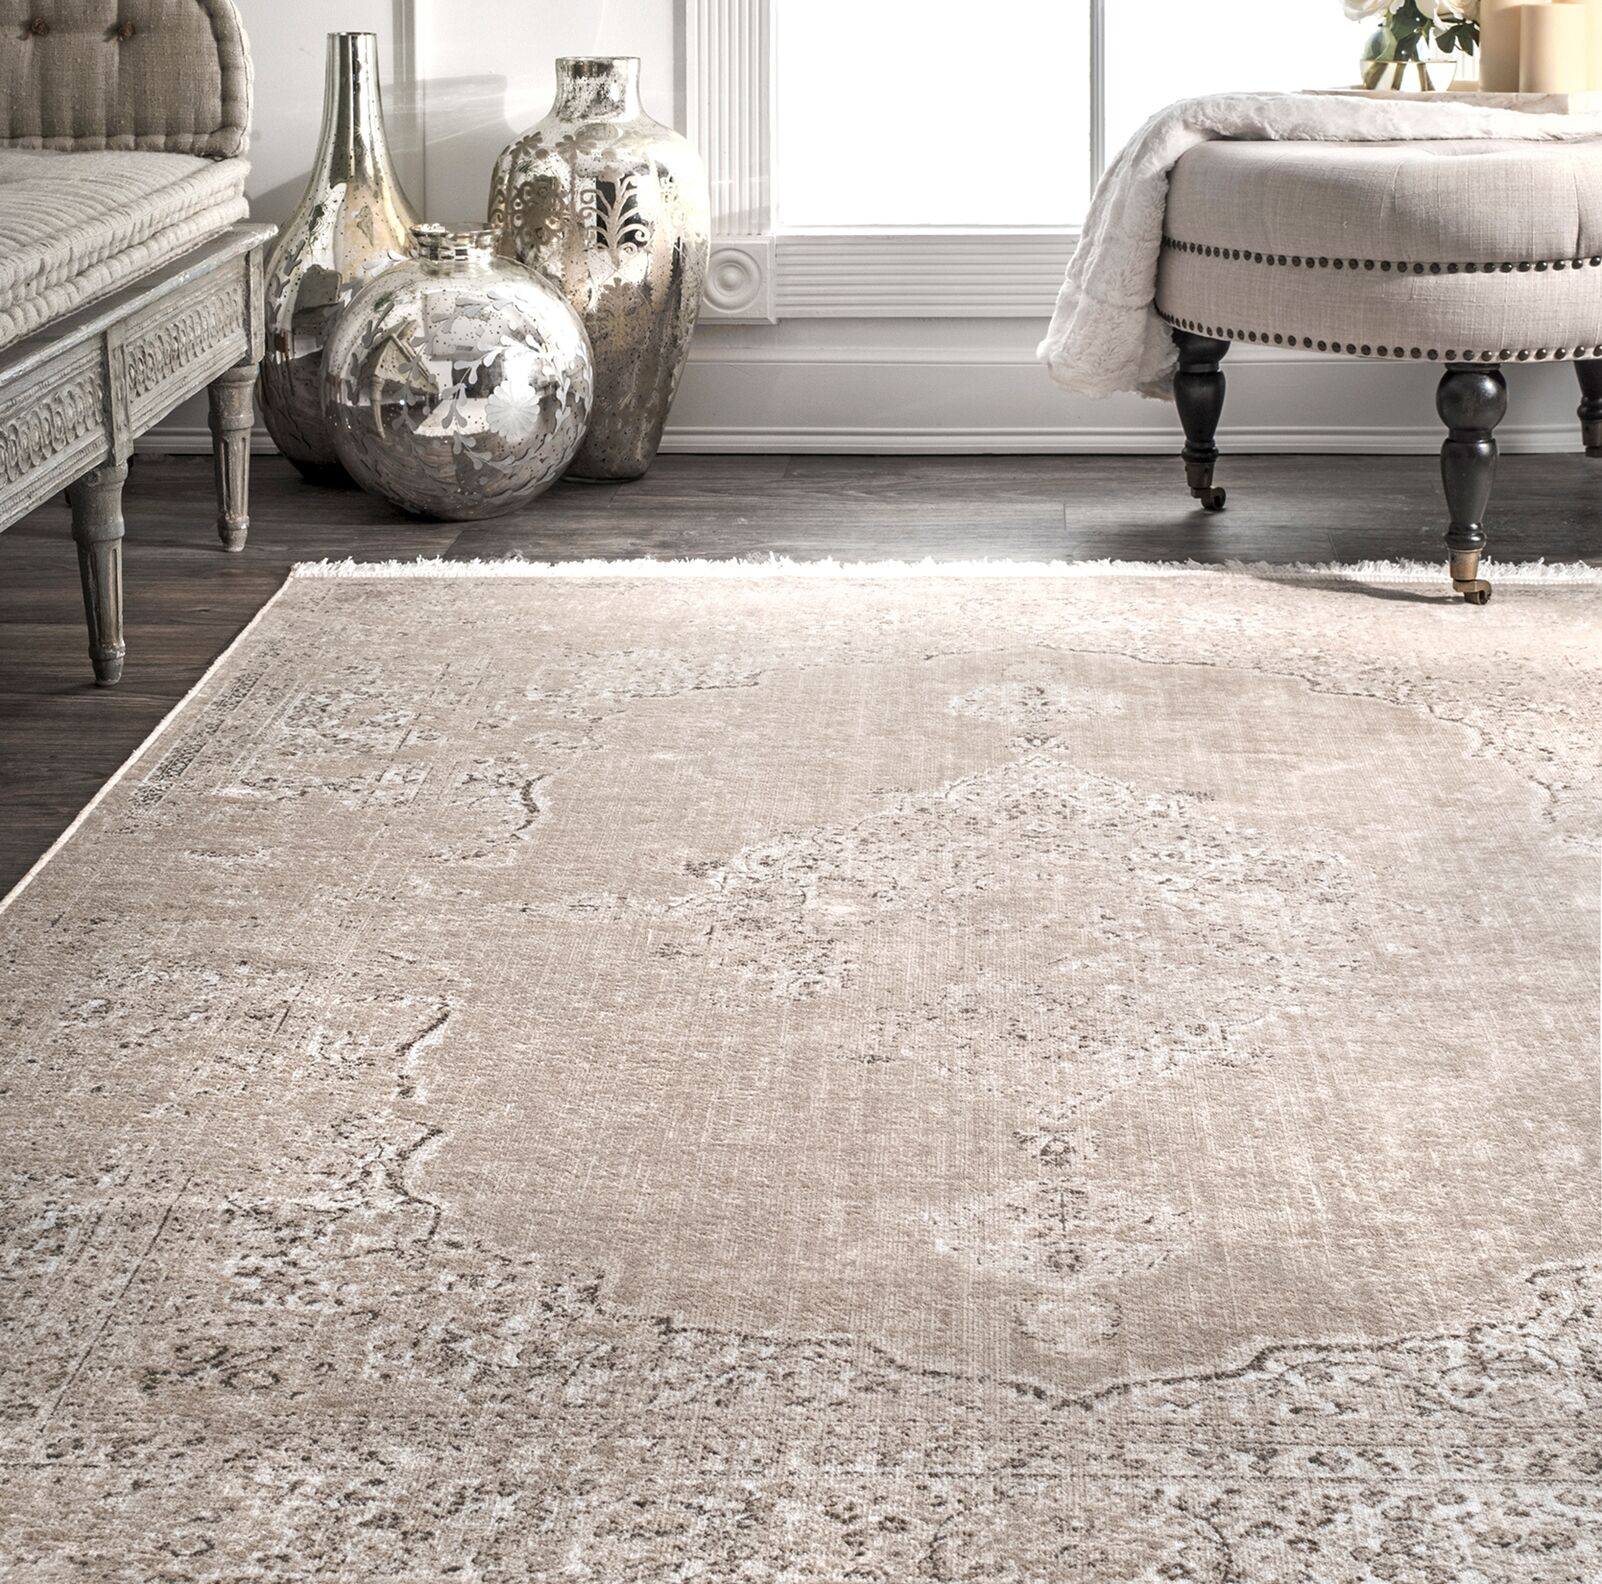 Cepeda Beige Area Rug Rug Size: Rectangle 9' x 12'